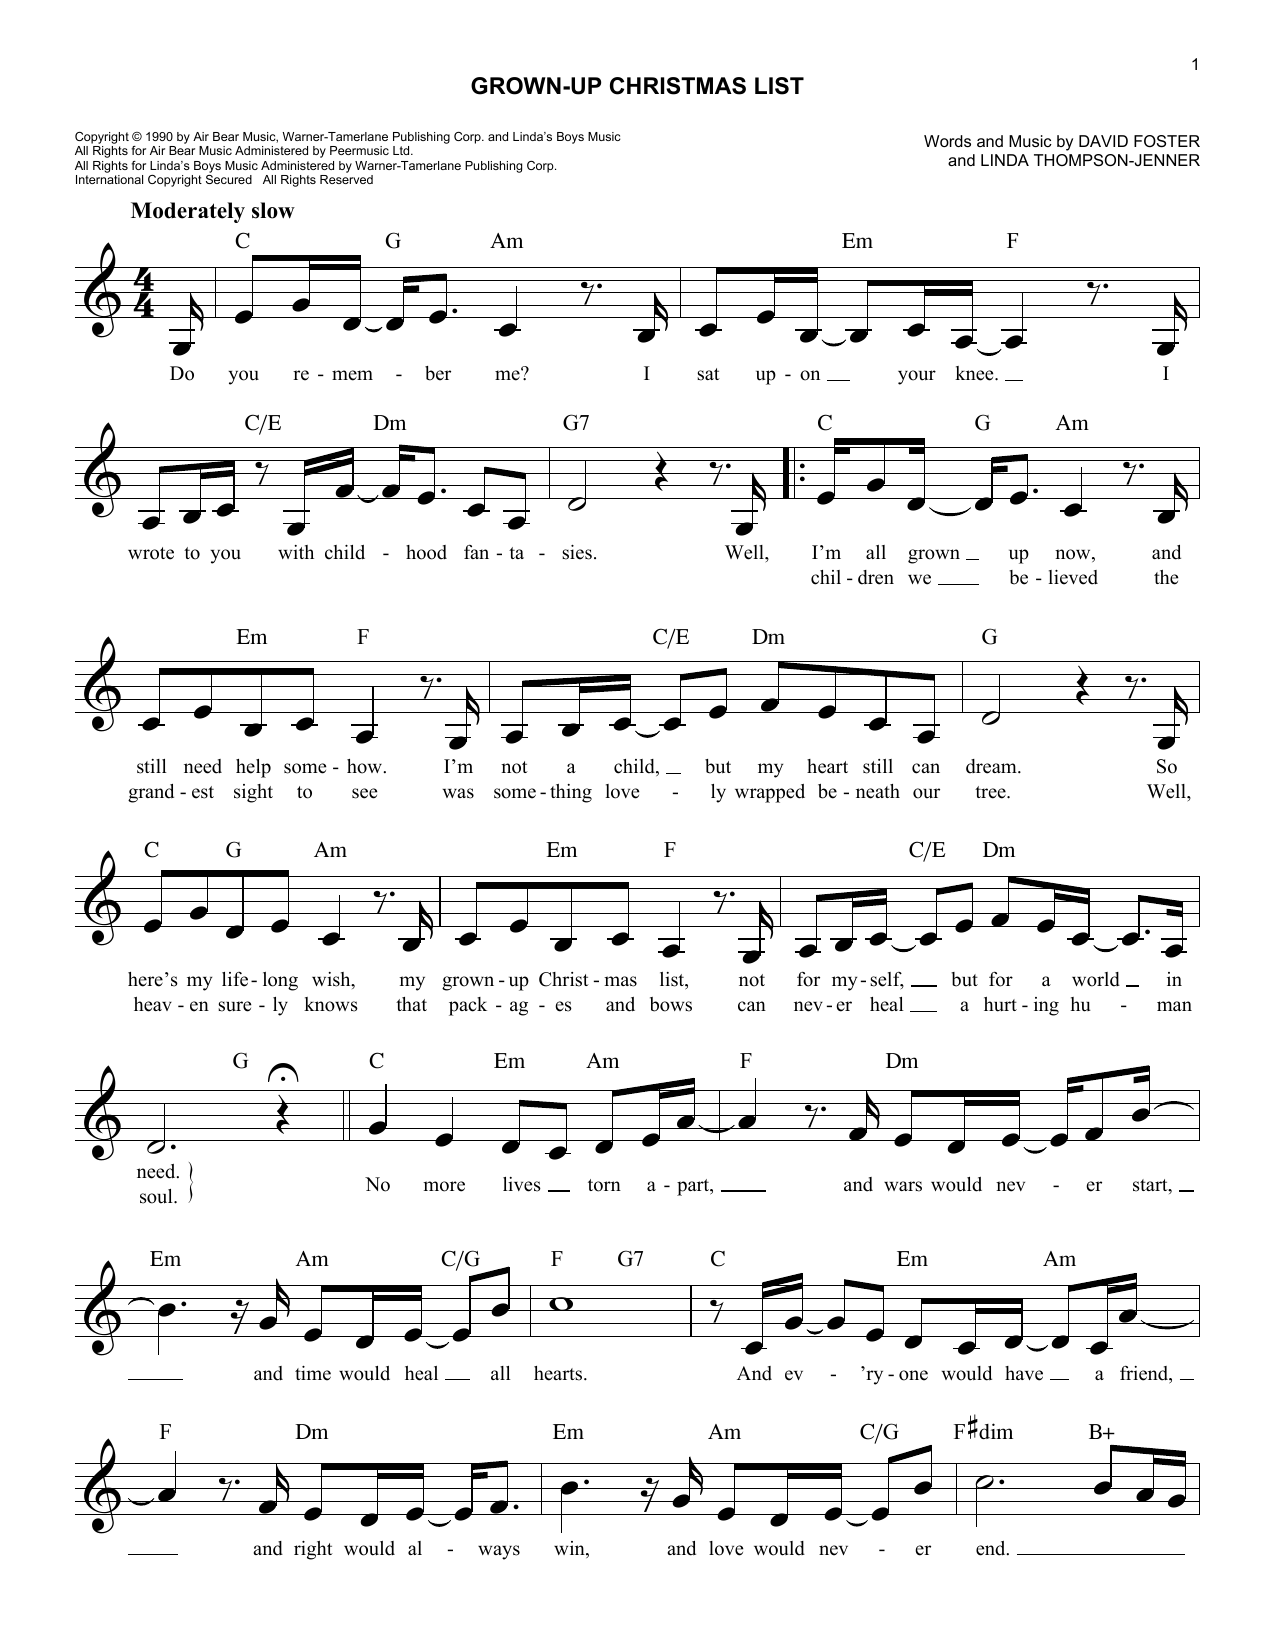 amy grant grown up christmas list at stantons sheet music - Amy Grant Grown Up Christmas List